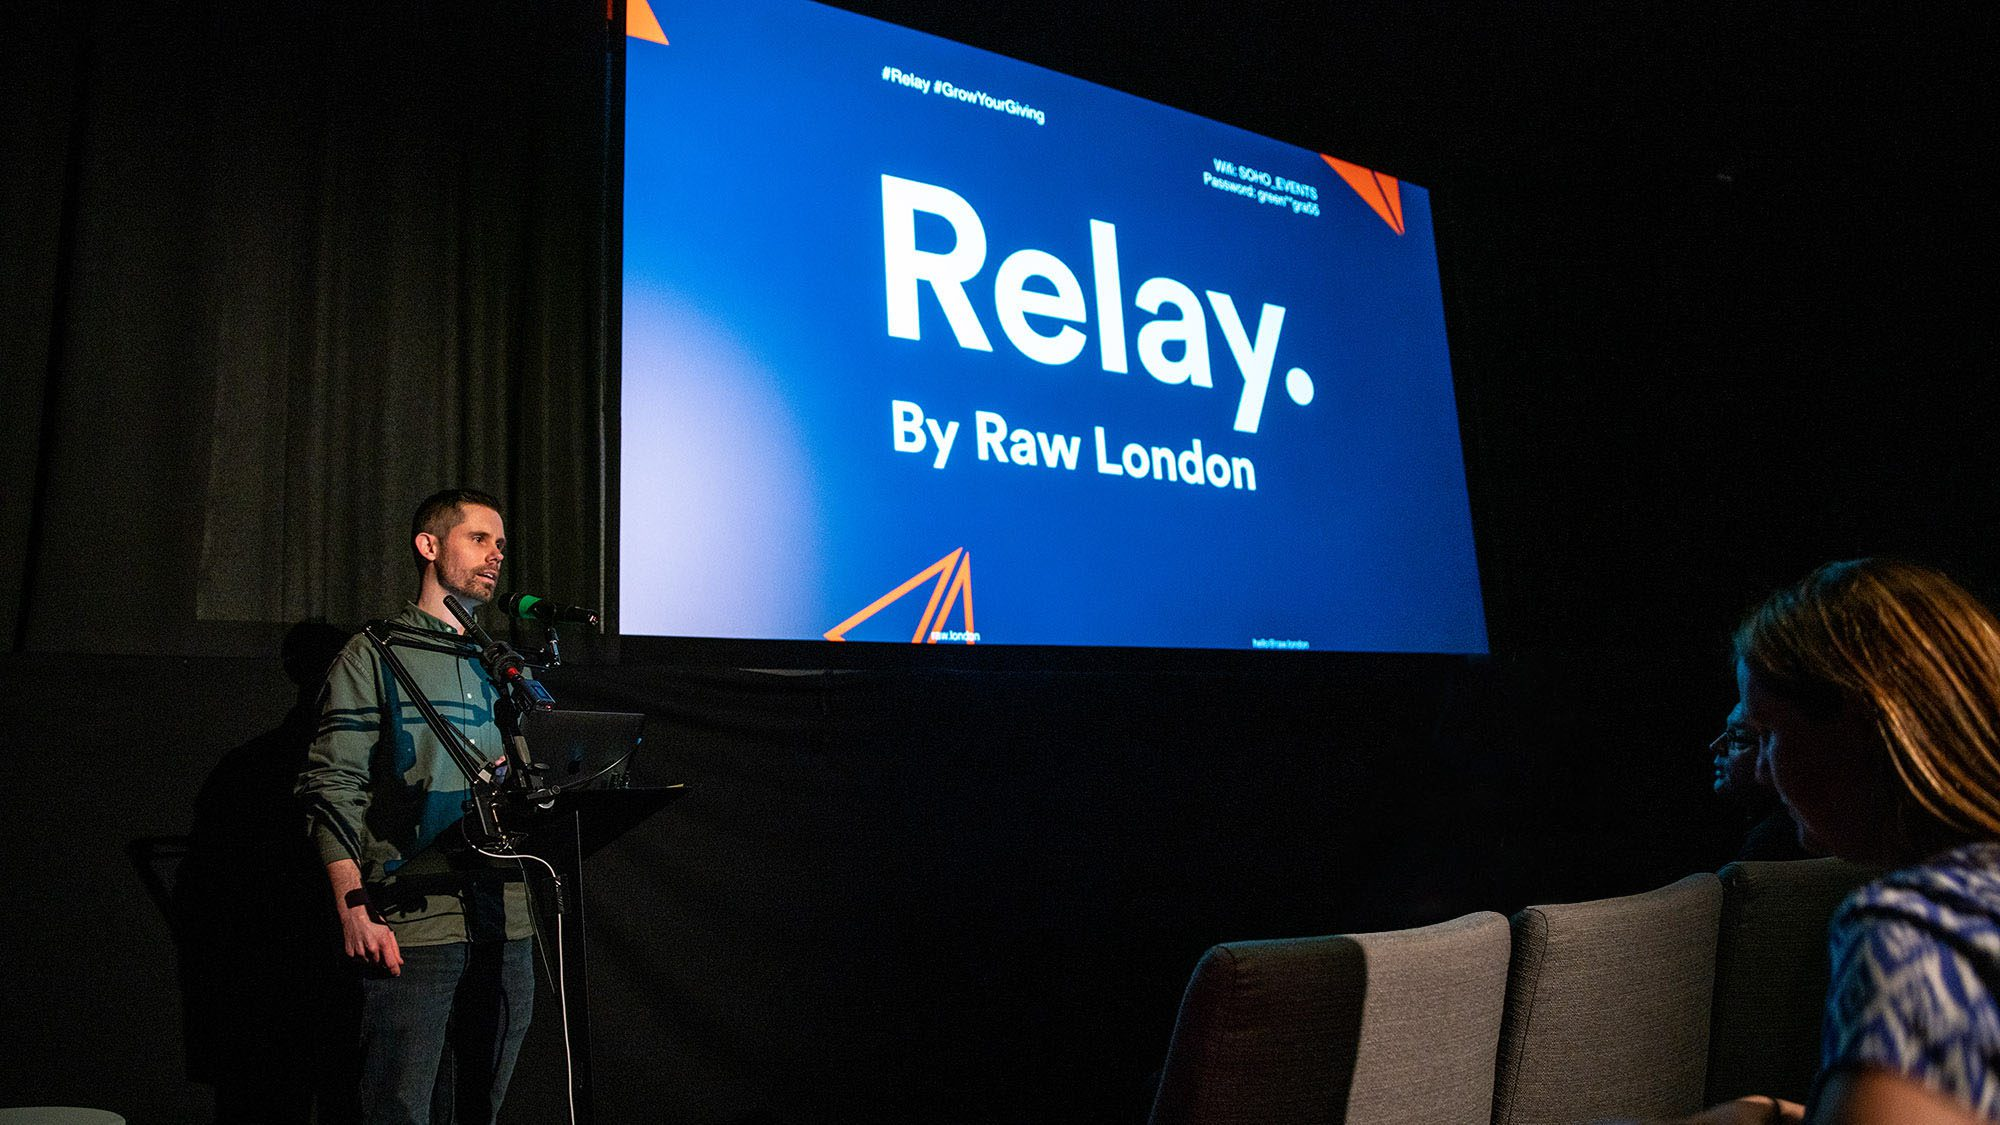 Ryan Wilkins speaks at Raw London's Relay event